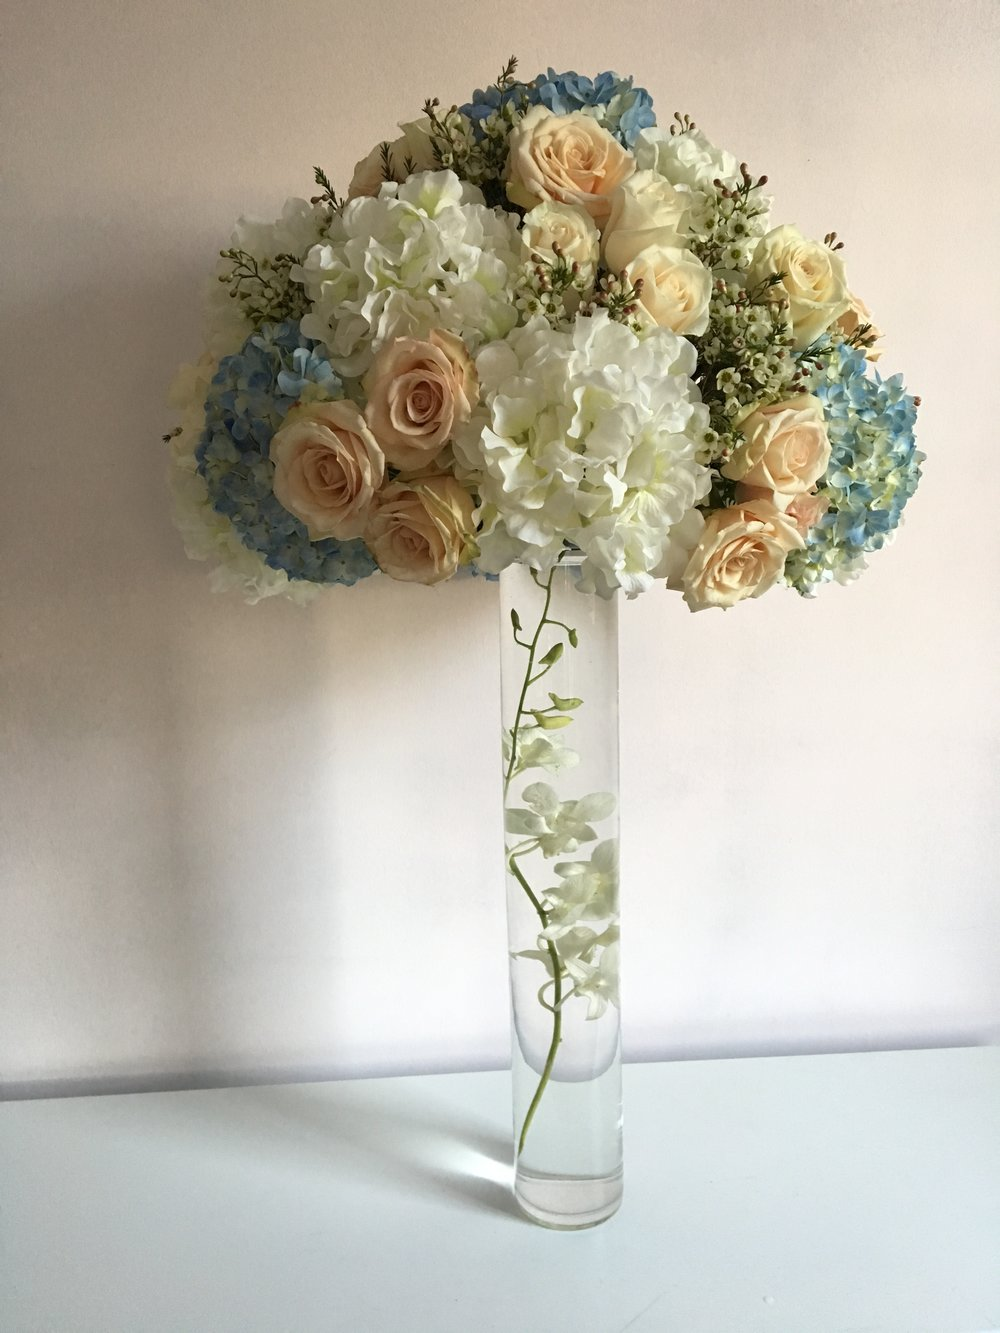 Evelisa Floral & Design: blue, blush & white